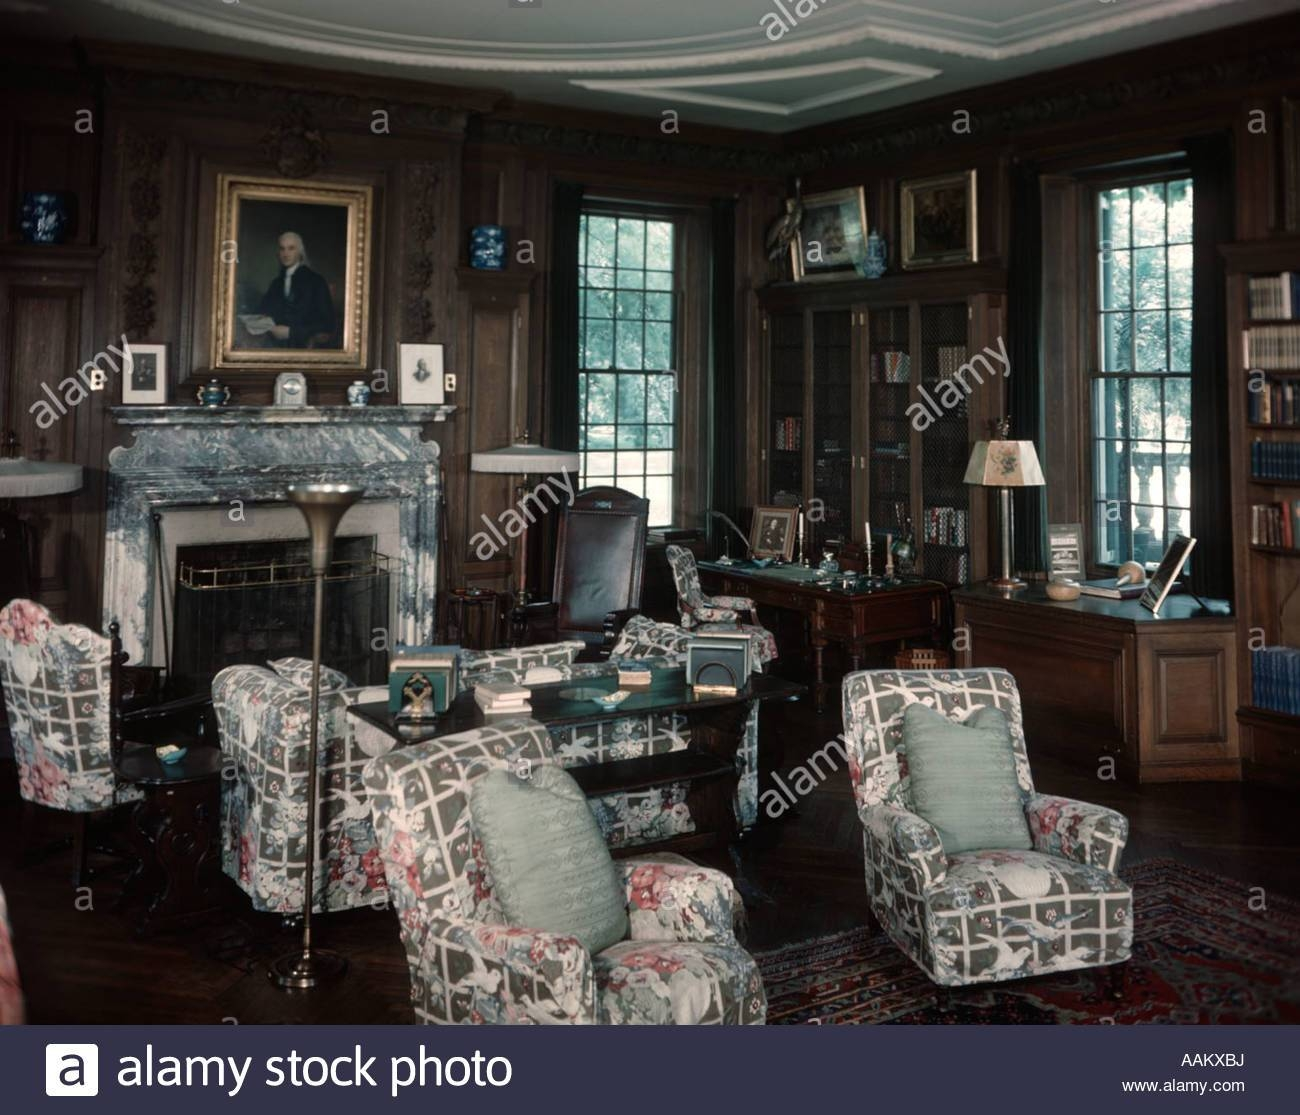 1930S 1940S Interior Of Library Room With Chintz Covered Chairs intended for Chintz Sofas And Chairs (Image 1 of 25)